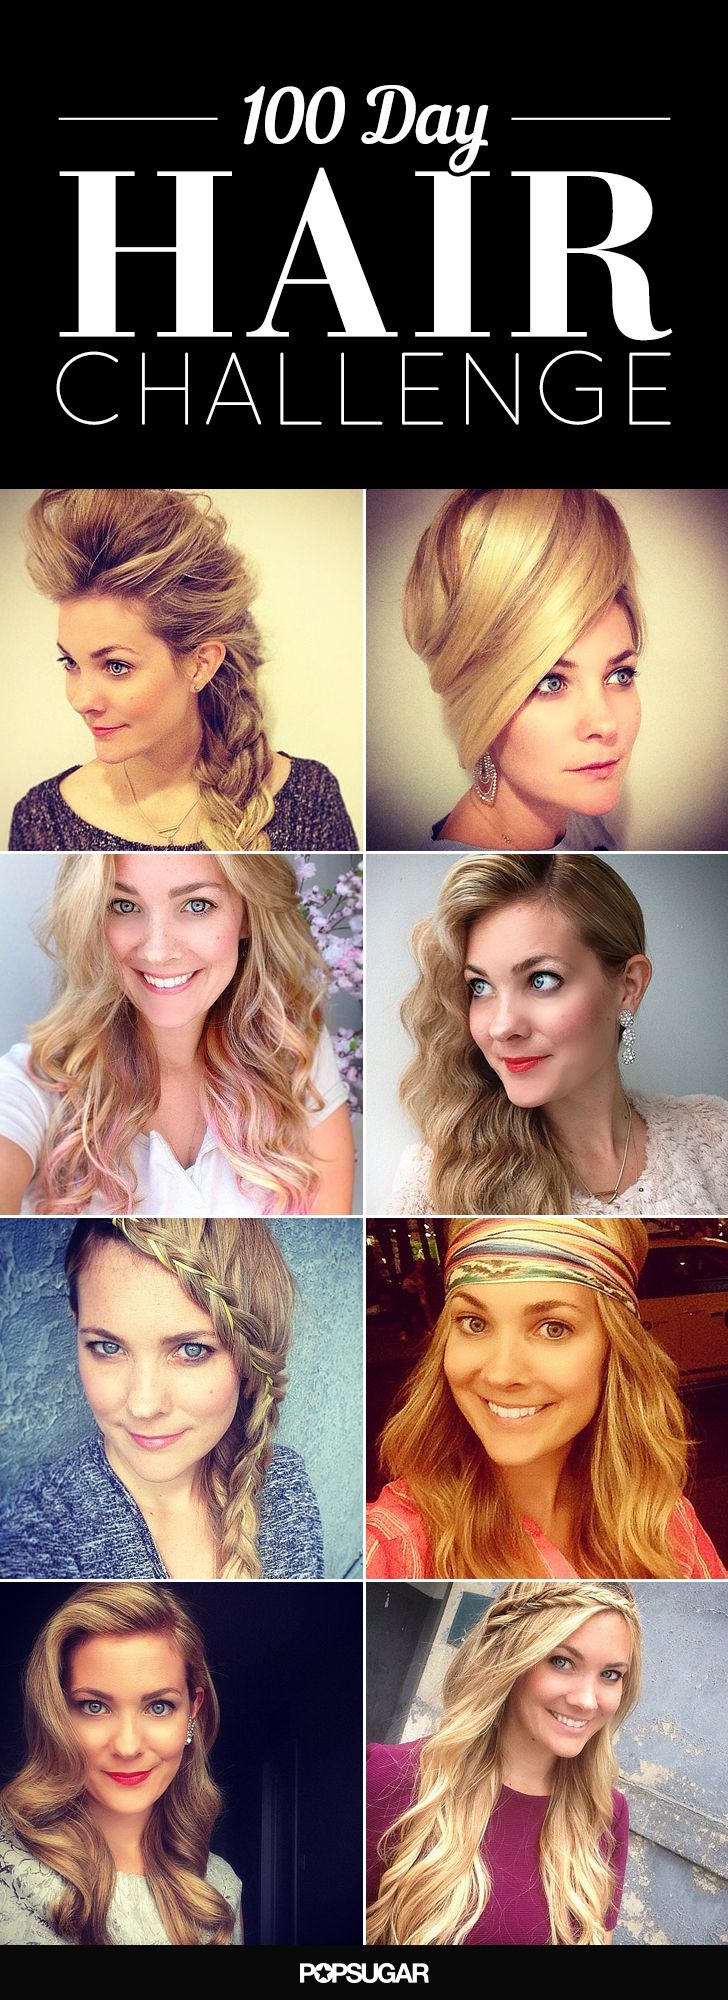 #100DayHair challenge: braids, waves, and more!